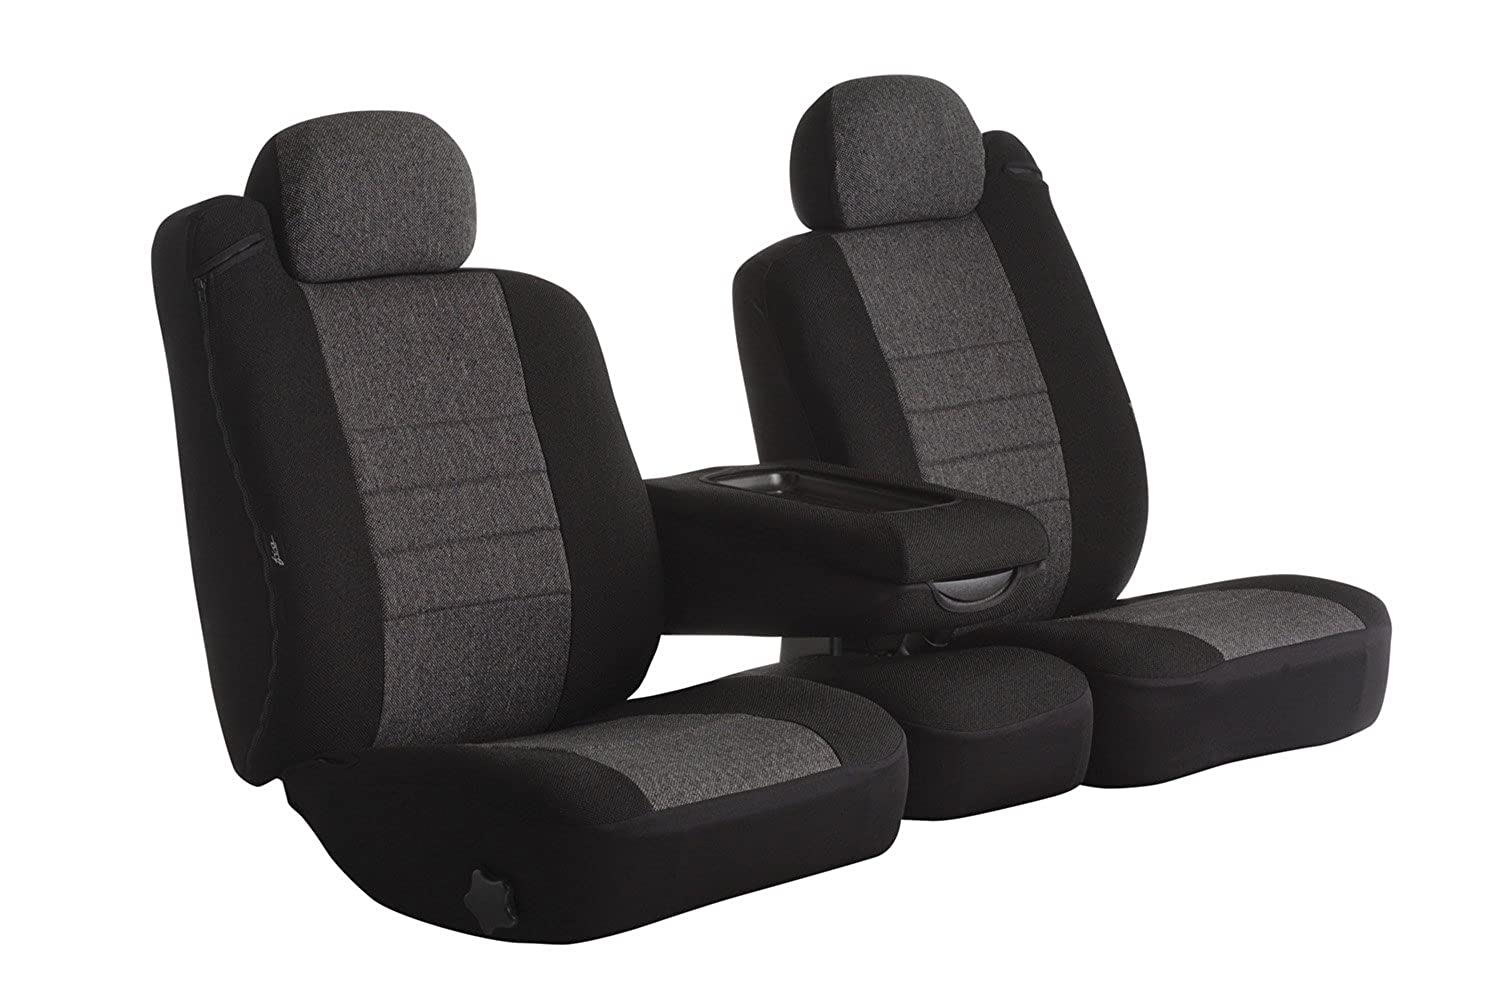 Fia OE37-30 CHARC Custom Fit Front Seat Cover Split Seat 40/20/40 - Tweed, (Charcoal)